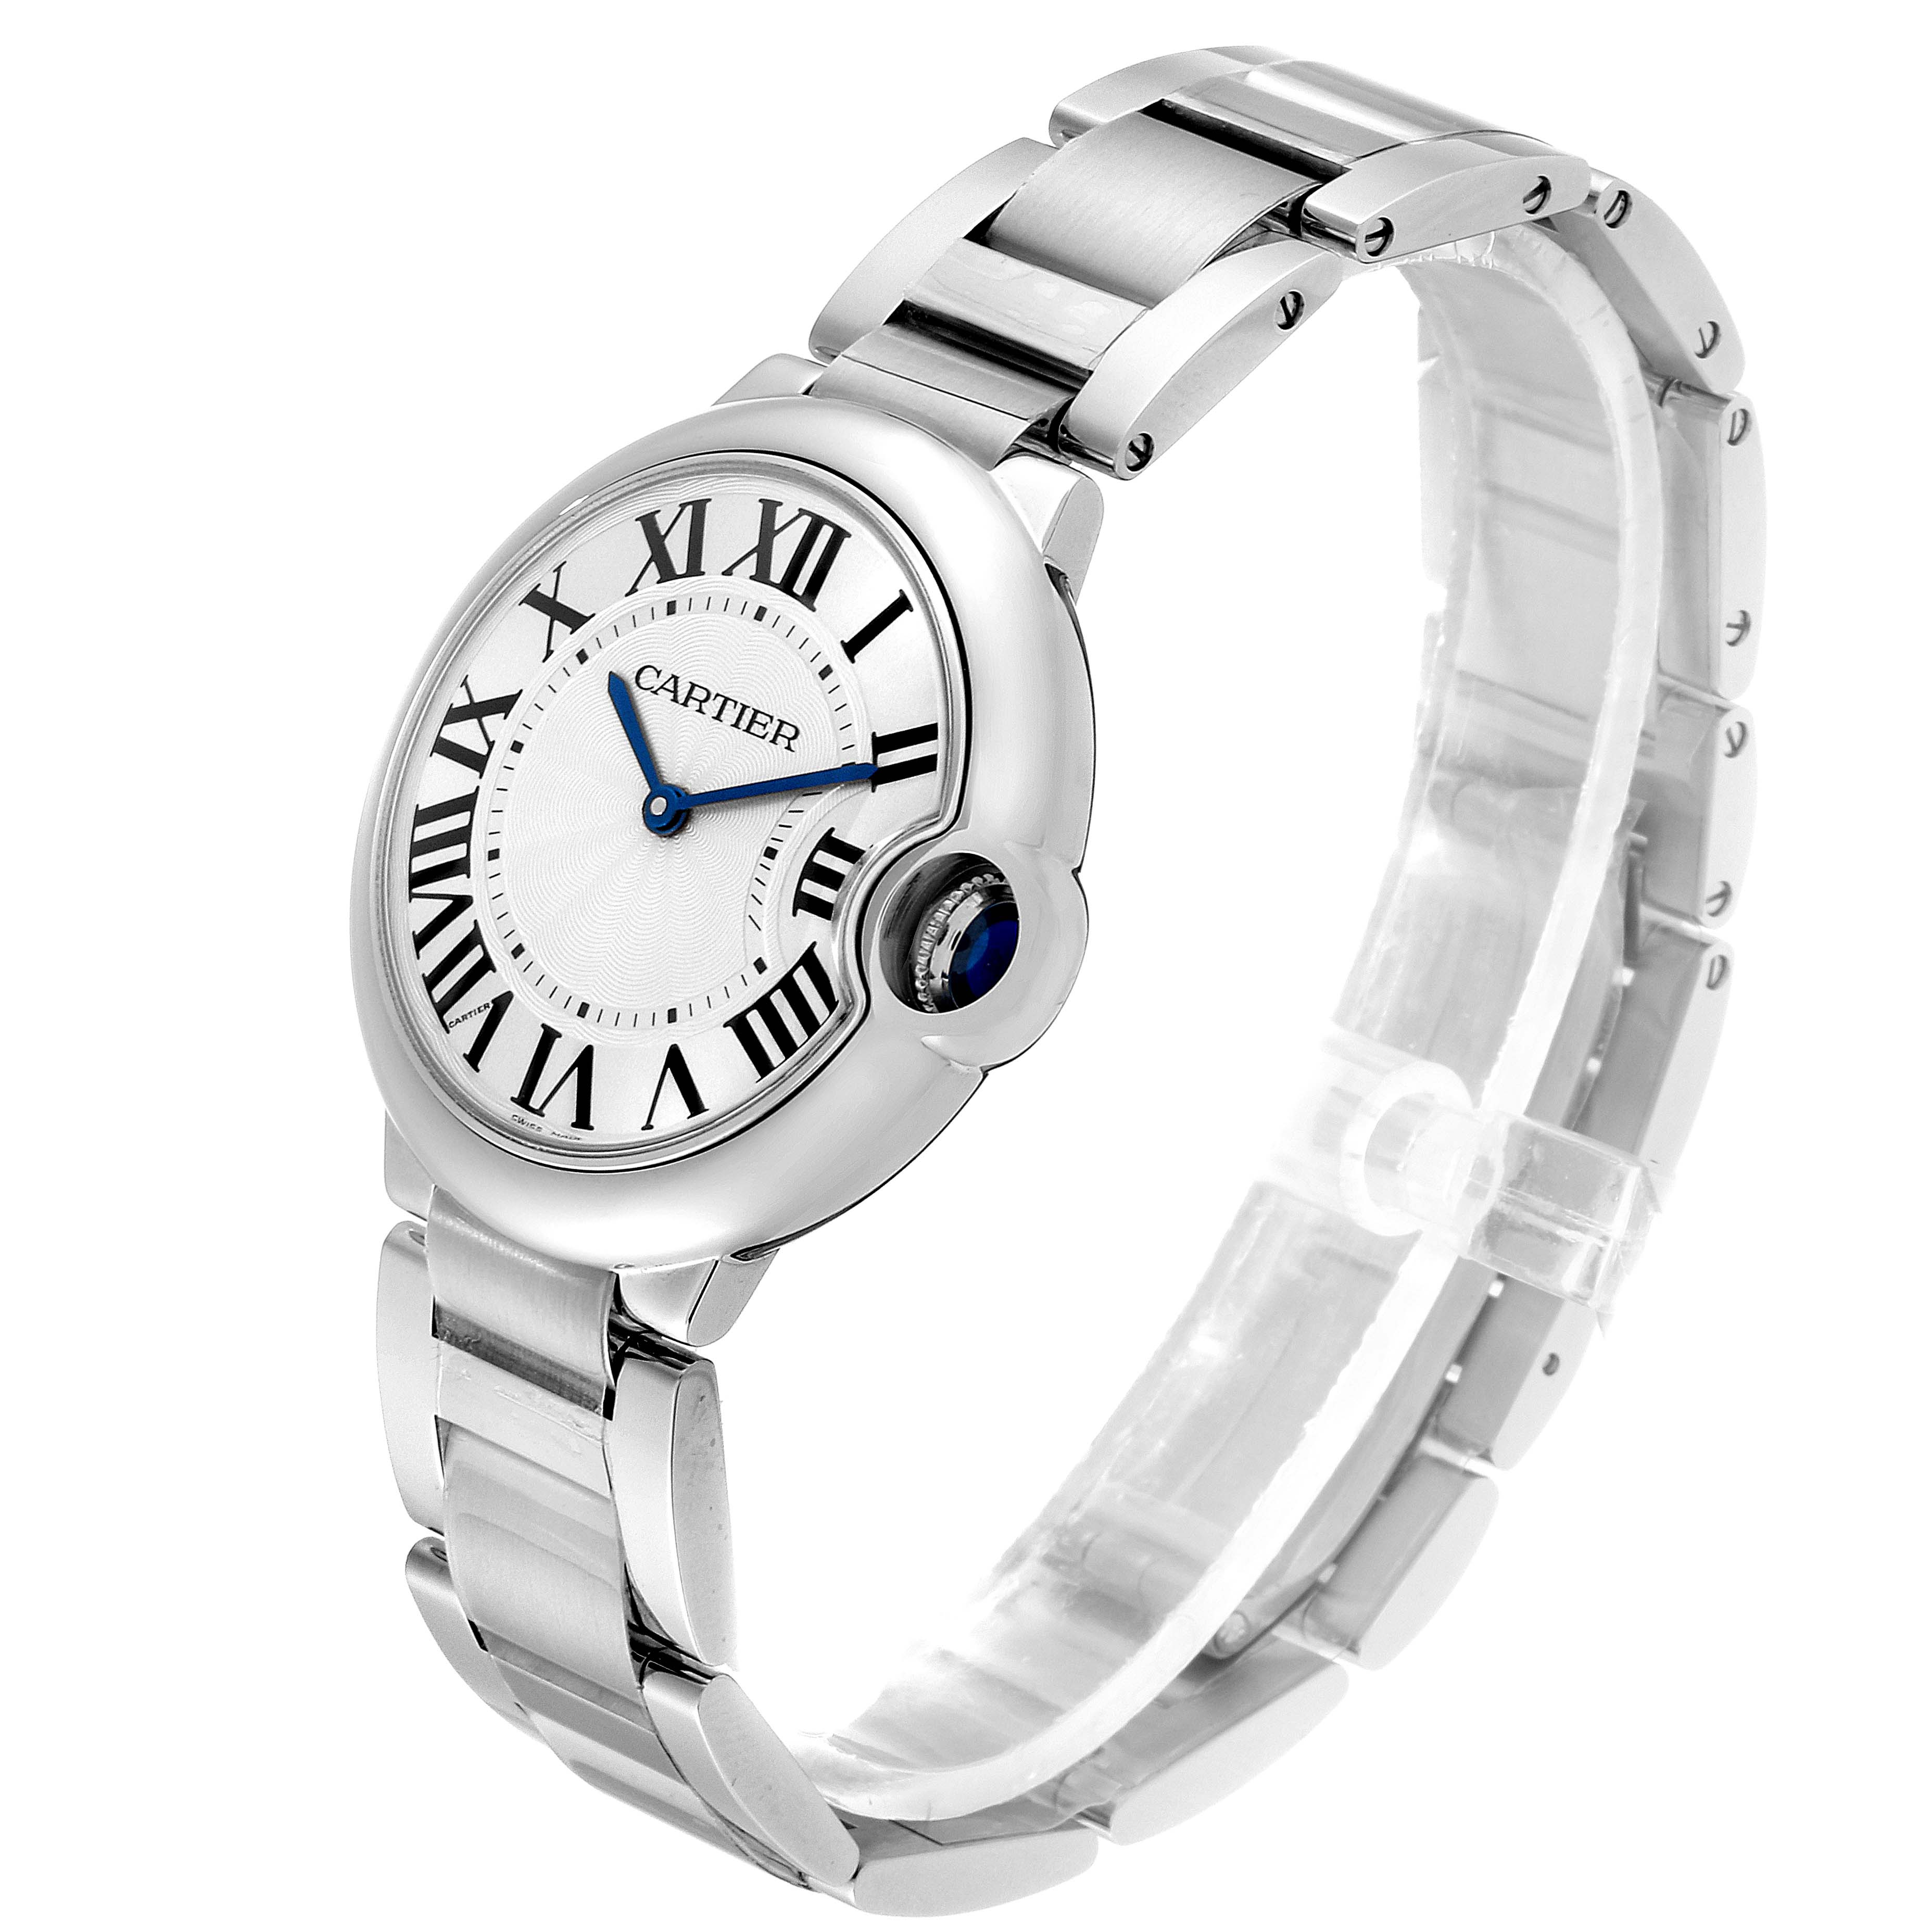 Cartier Ballon Bleu 36 Midsize Silver Guilloche Dial Watch W69011Z4 SwissWatchExpo